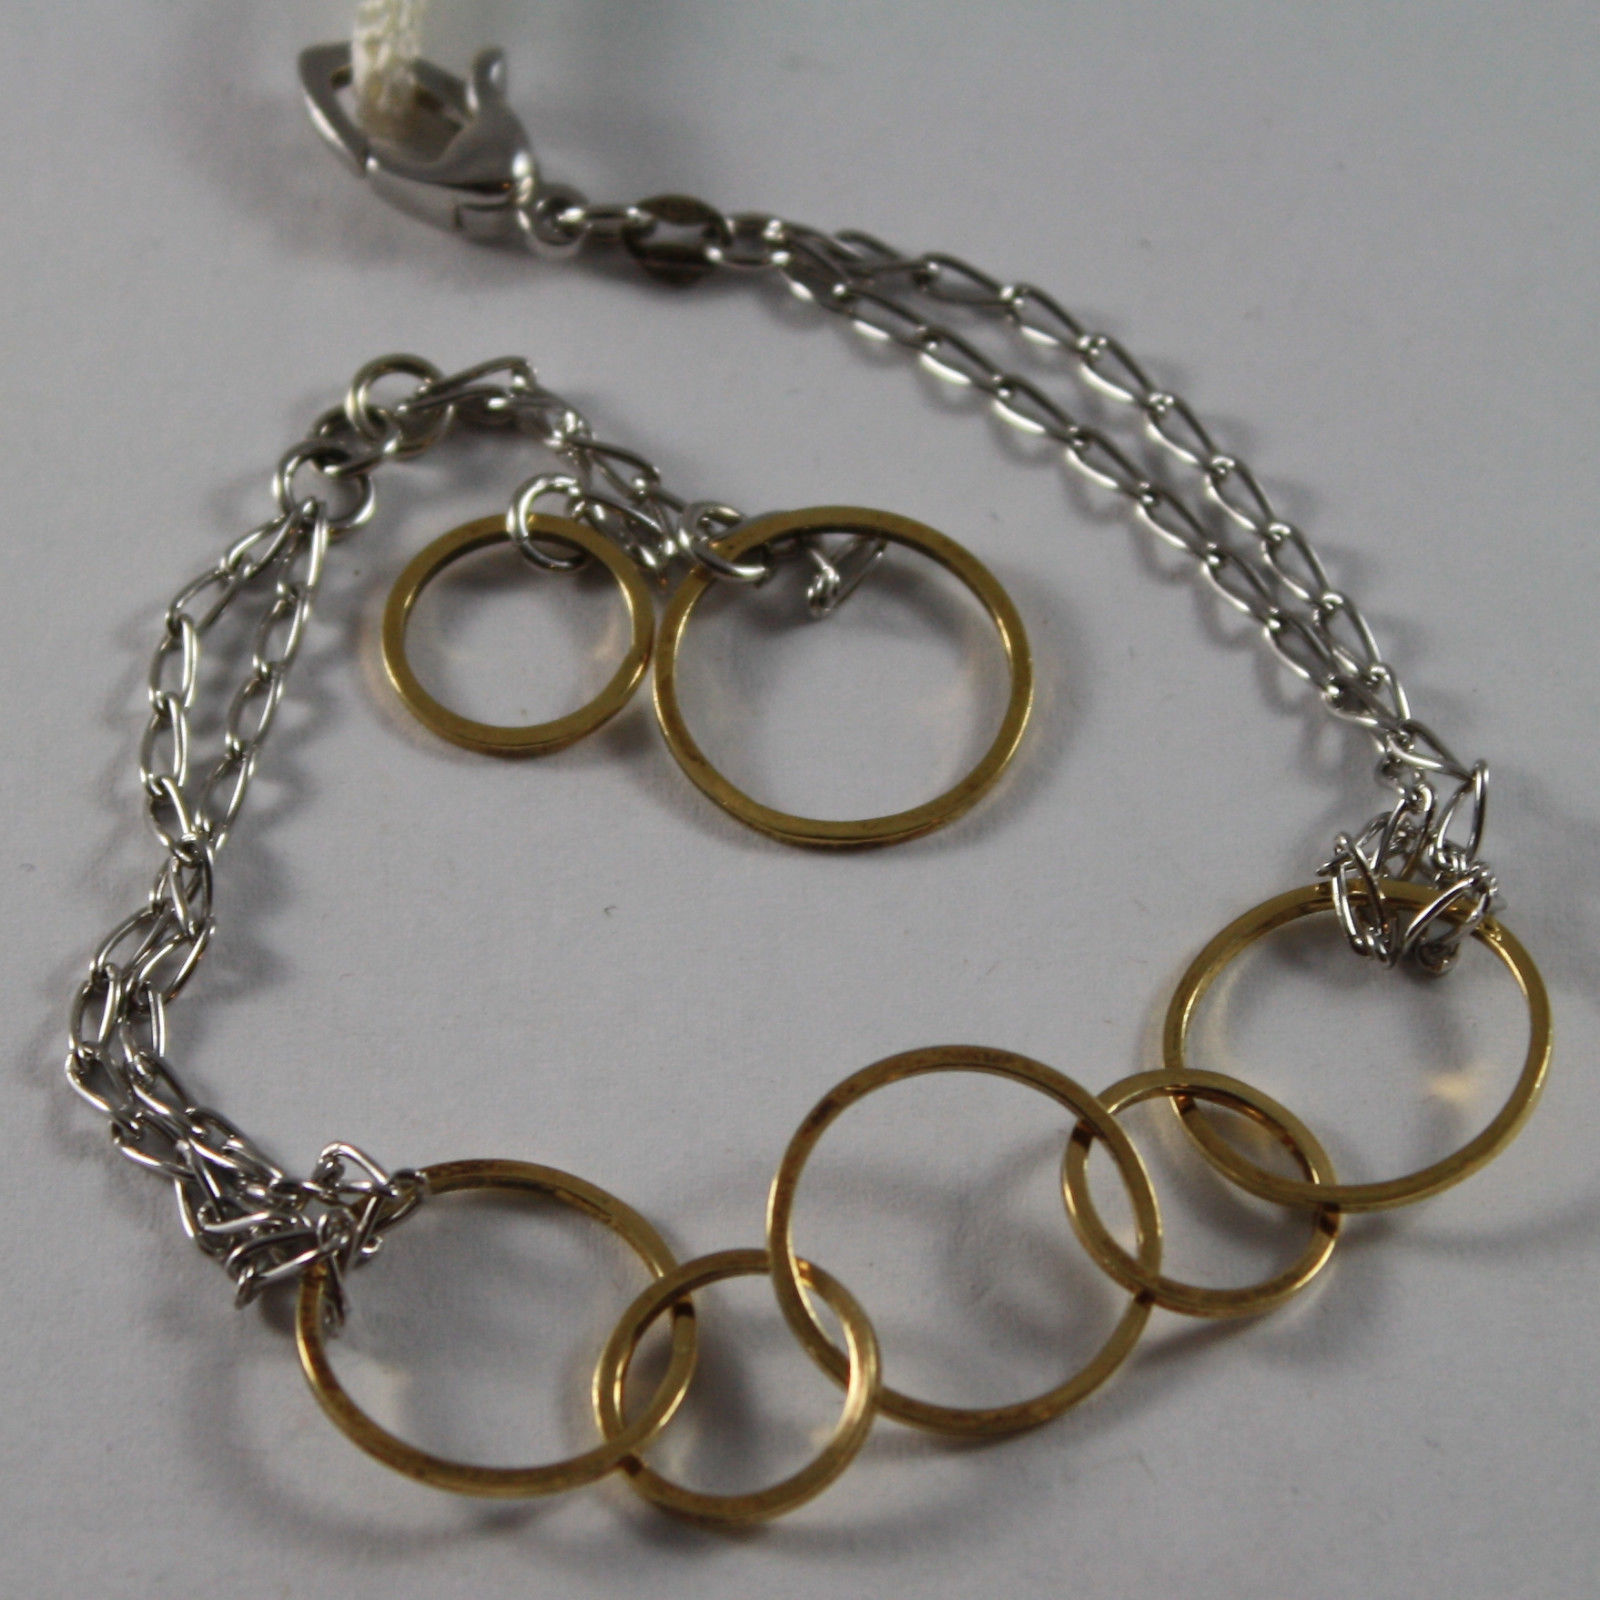 .925 RHODIUM SILVER AND YELLOW GOLD PLATED BRACELET WITH CIRCLES